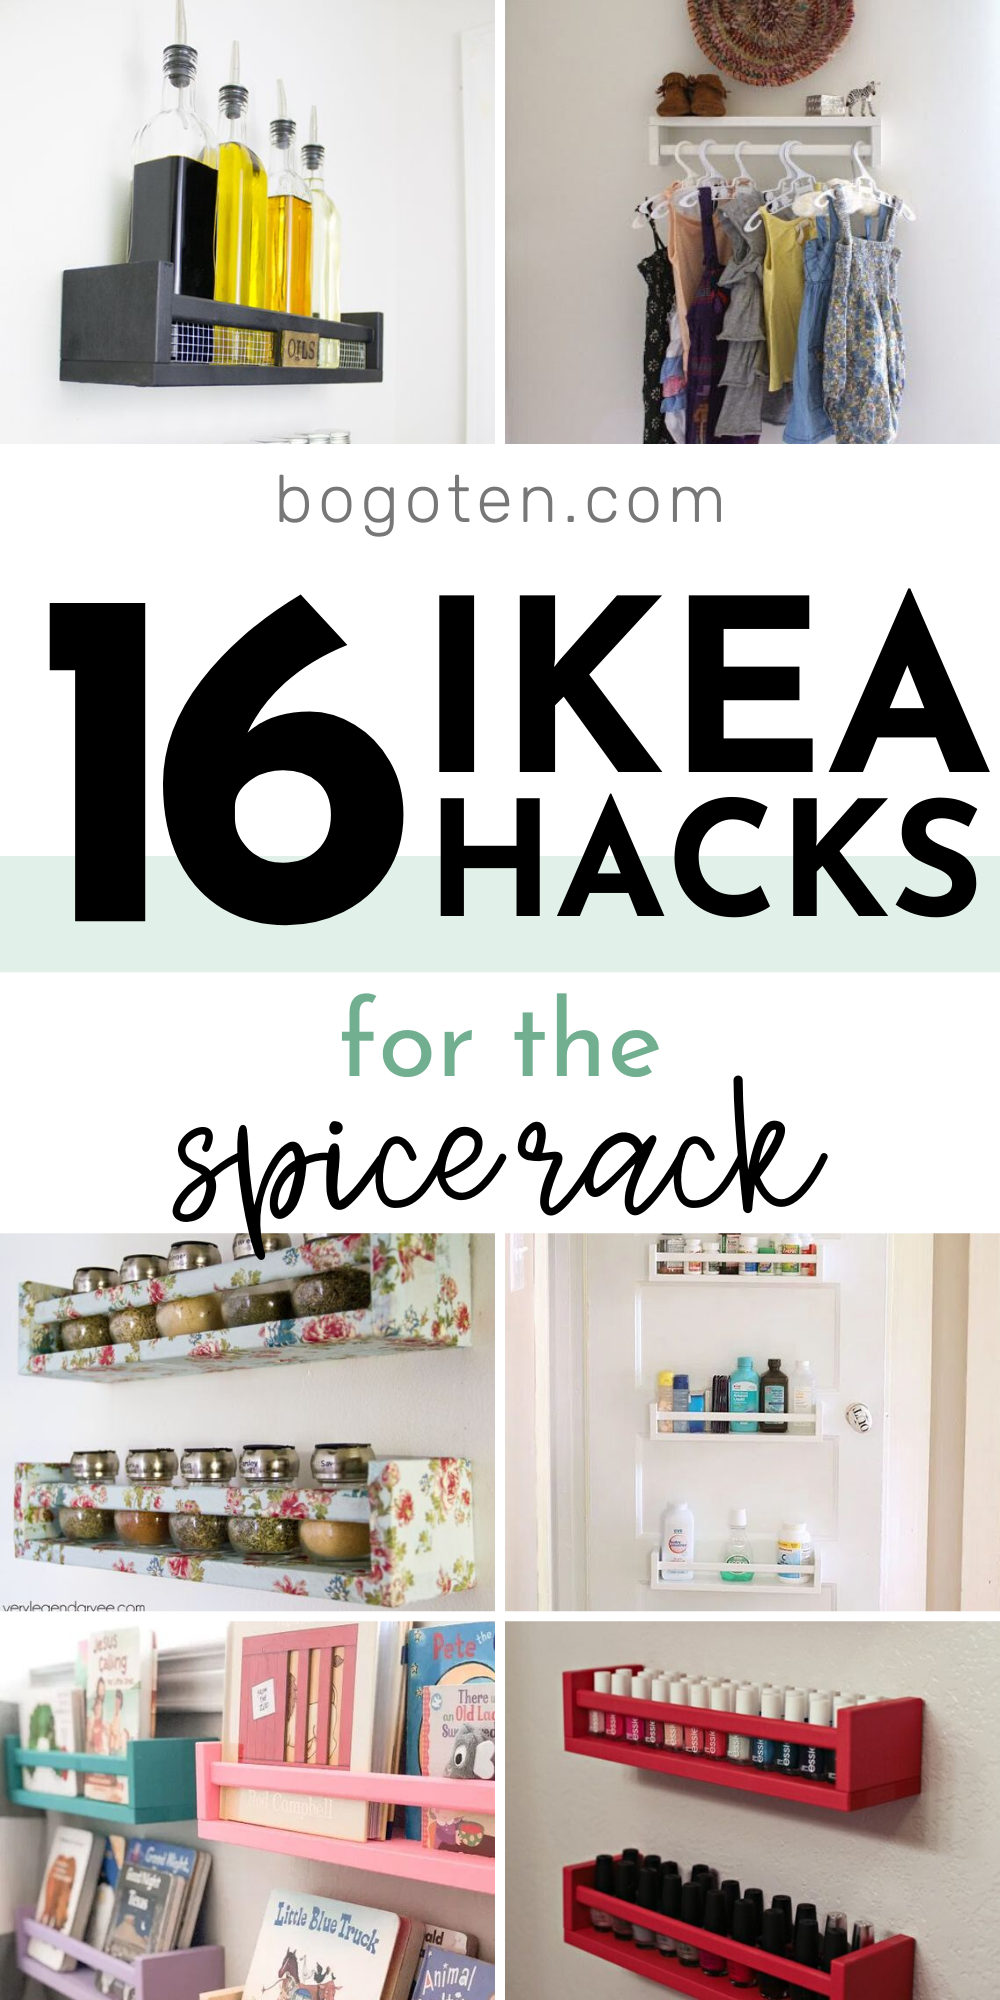 Ikea Hack For The Rack to Spice Up Your Home